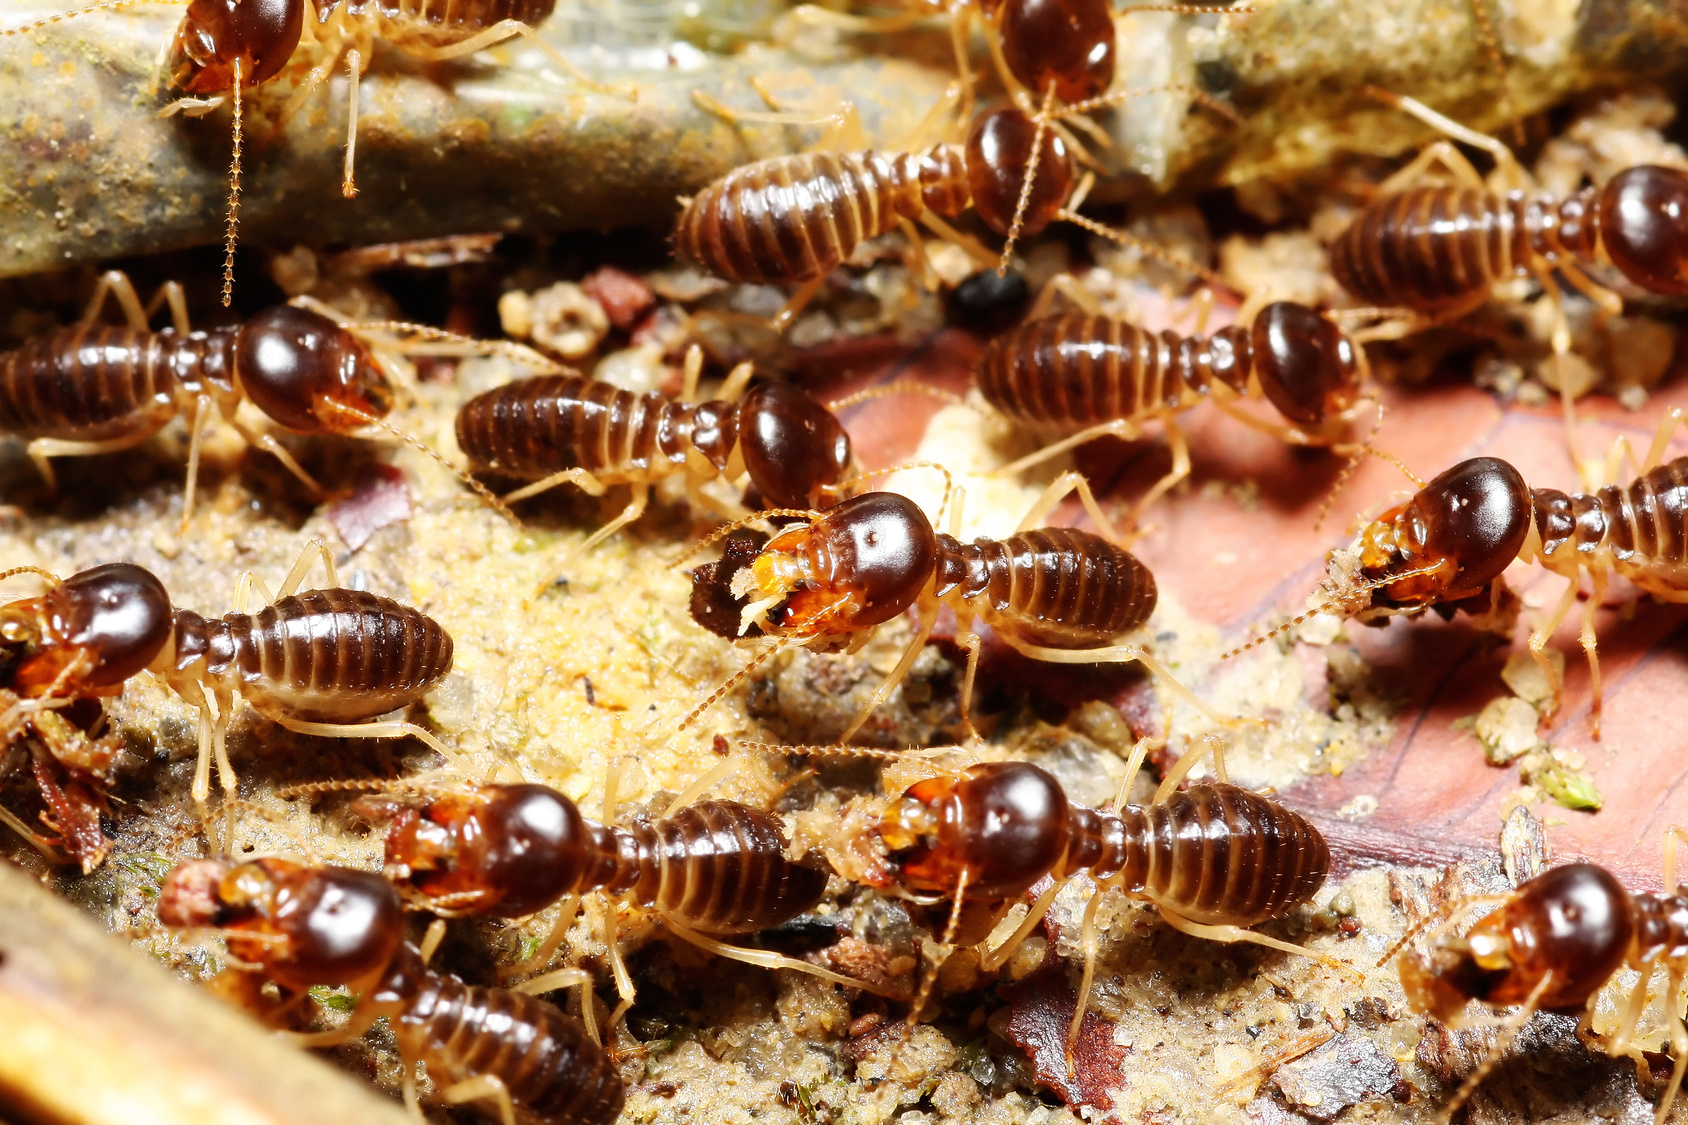 Diagnostic termites